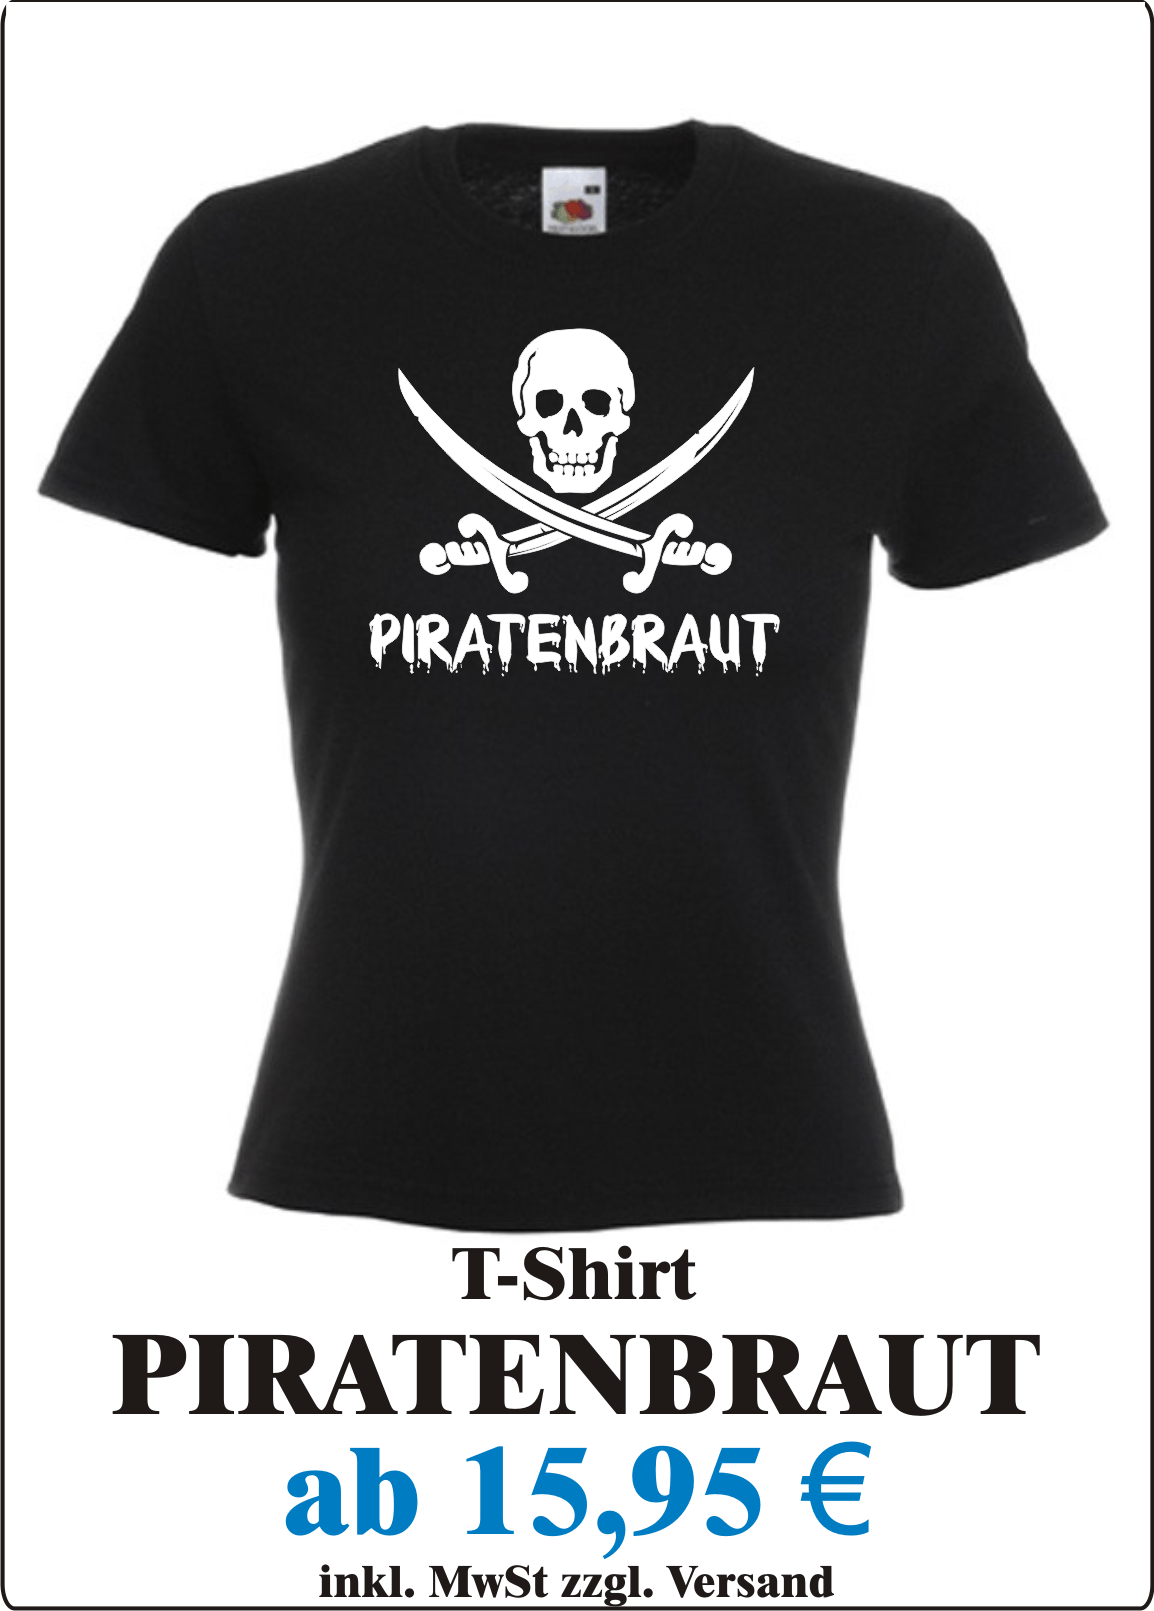 Pirat_Kostuem_Alternative_Sexy_Damen_T-Shirt_mit_Motiv_Pirat_Frauen_T-Shirt_mit_Spruch_Pirat_Damen_T-Shirt_fuer_Fasching_Karneval_Angebotstafel